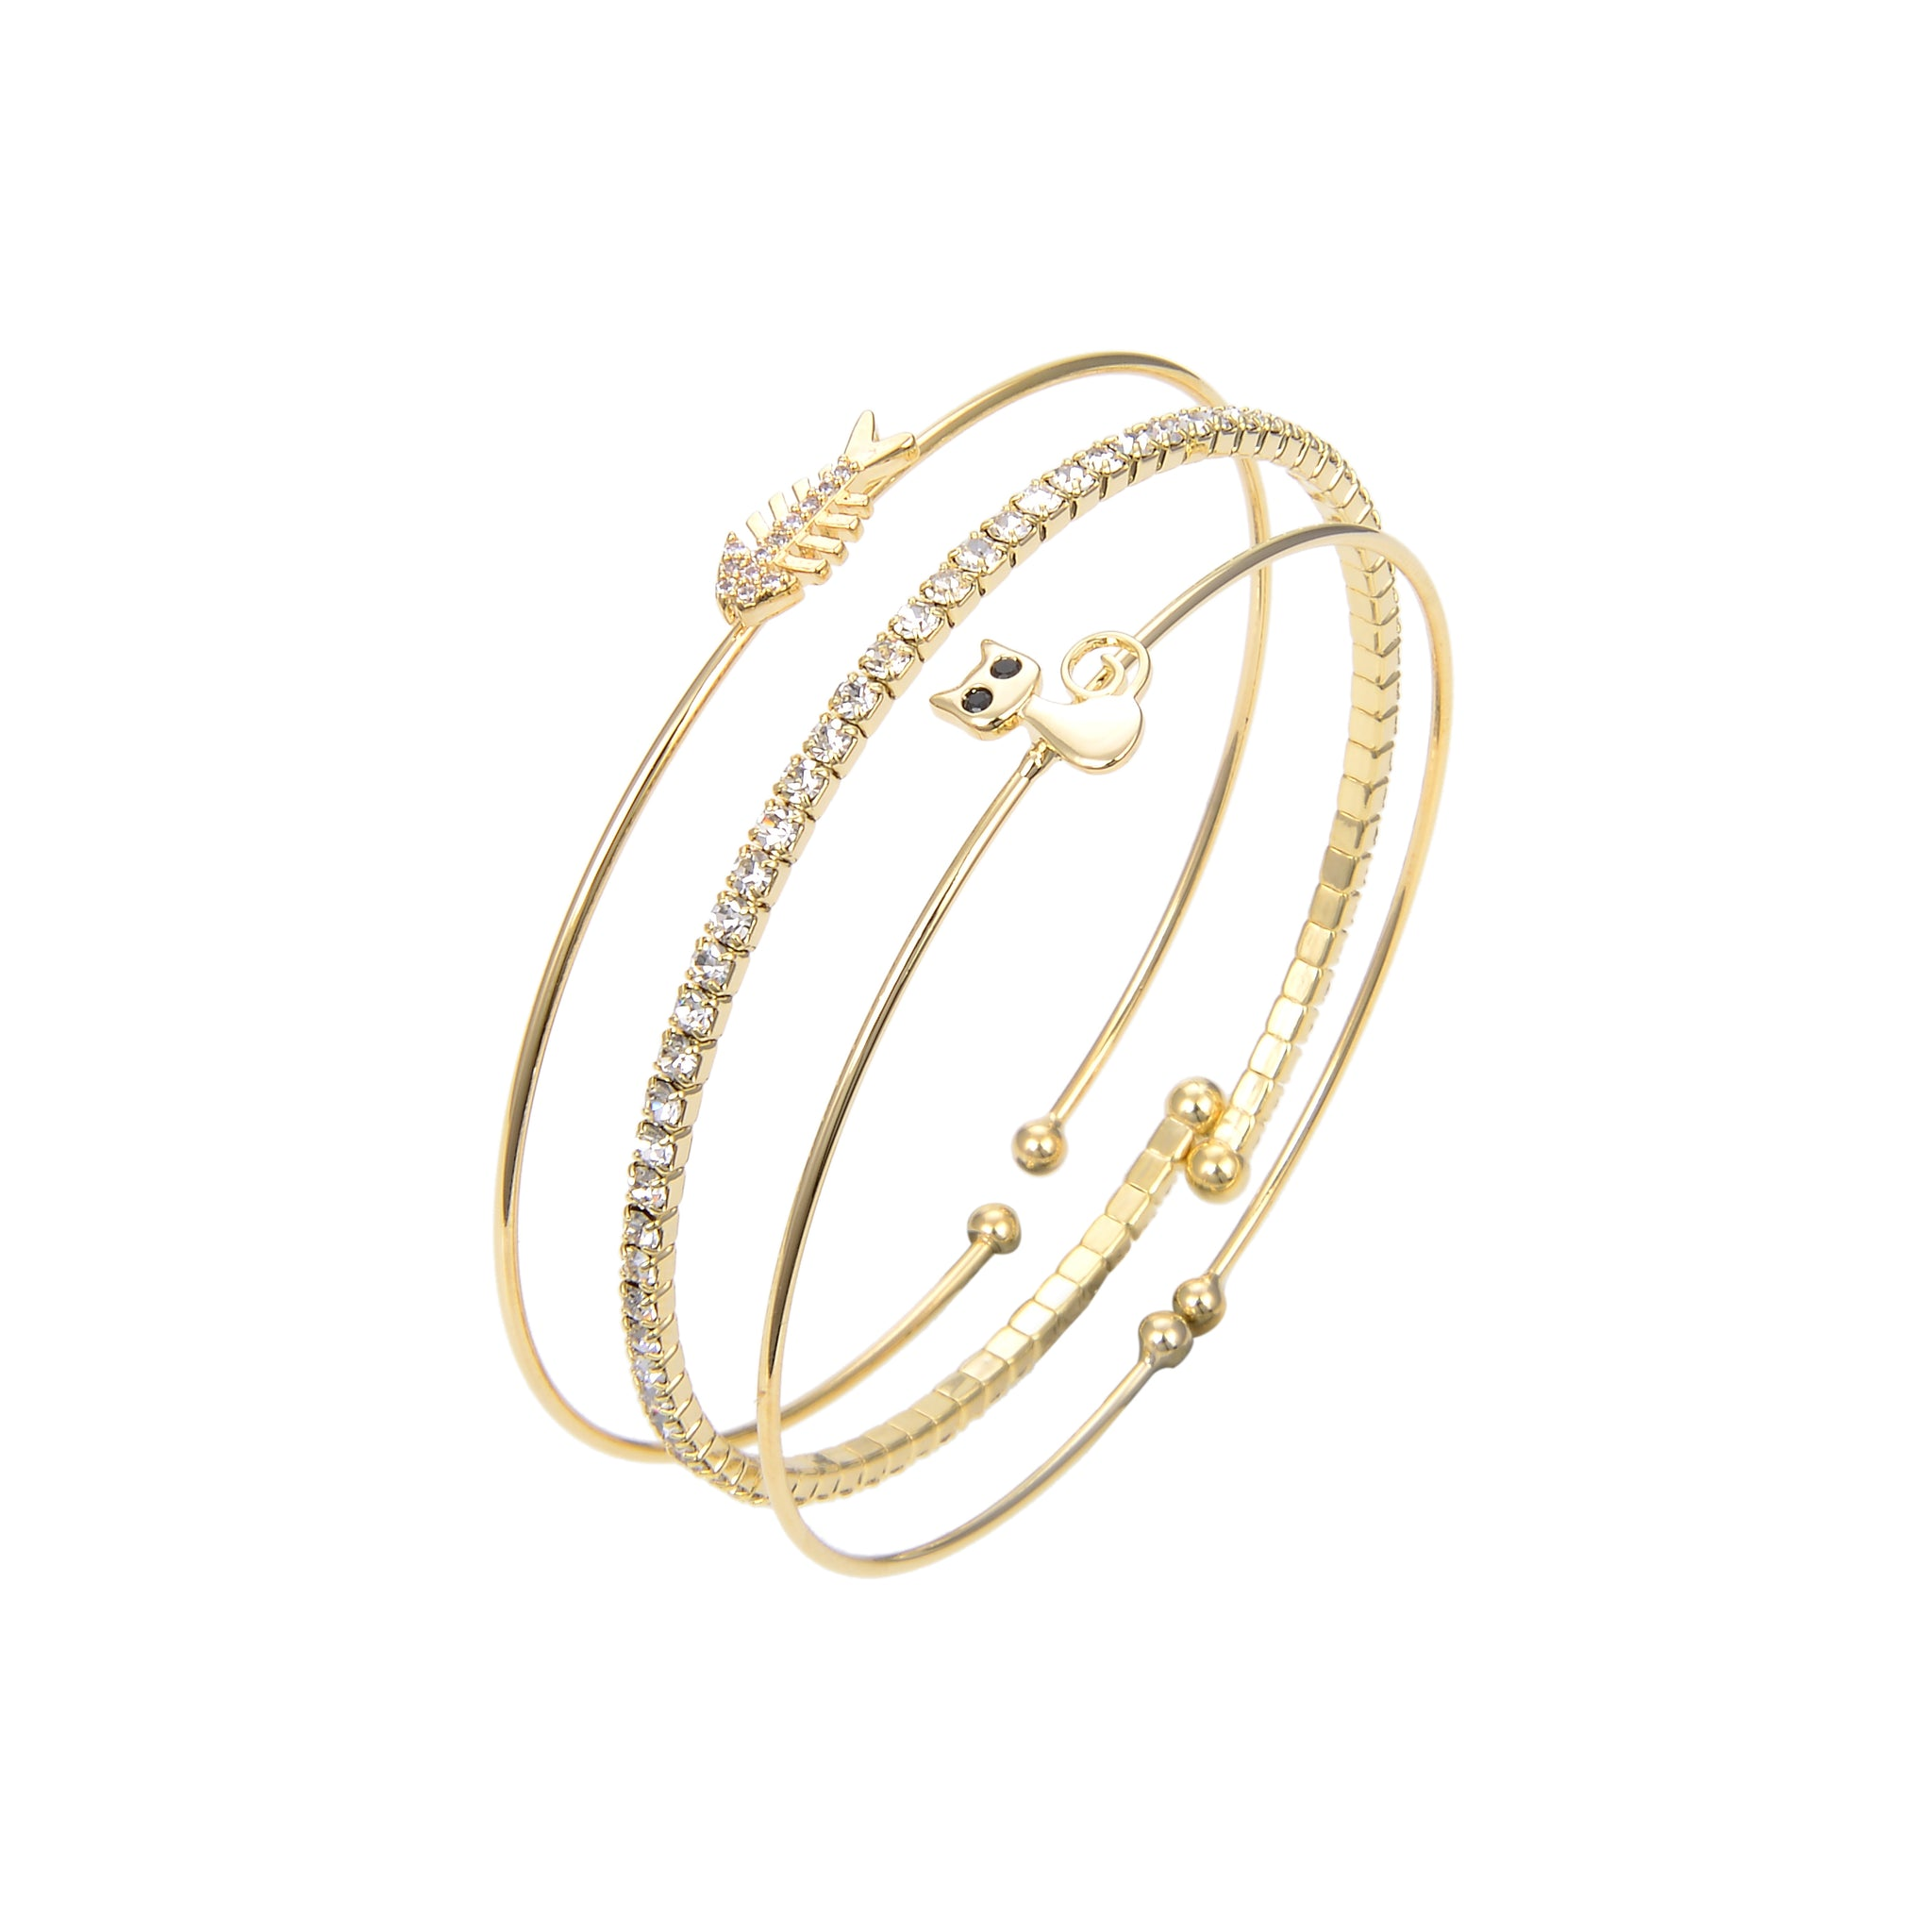 Gold Plated CZ Cubic Zirconia Bangle Bracelet, CZ Round Shape Fish and Cat Printed Bangle Bracelet